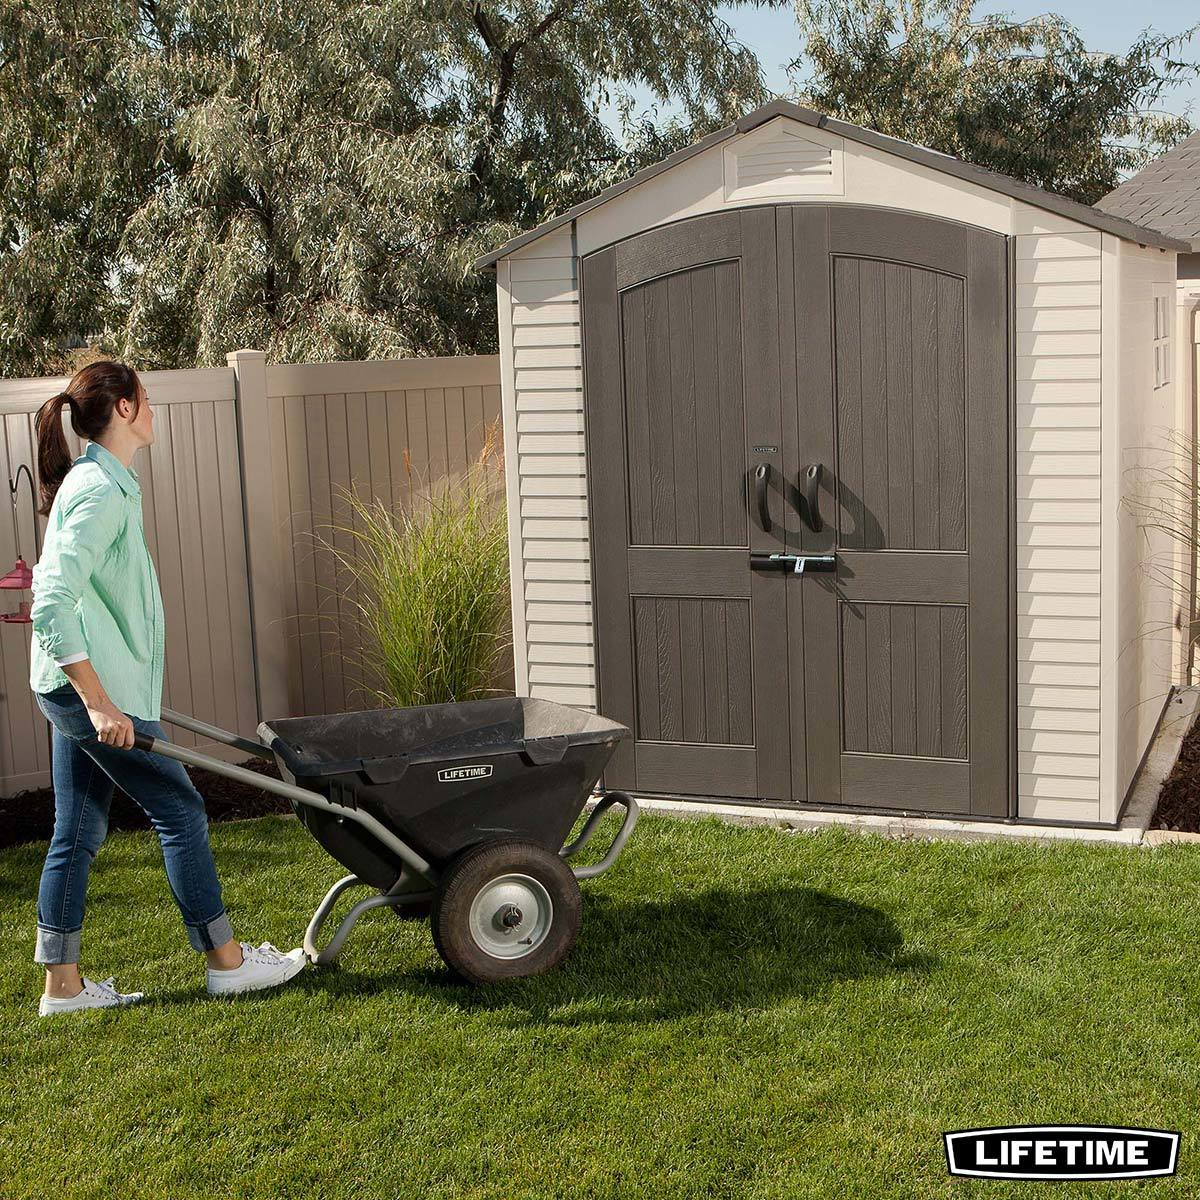 lifetime 7ft x 7ft 2 1 x 2 1m outdoor storage shed costco uk